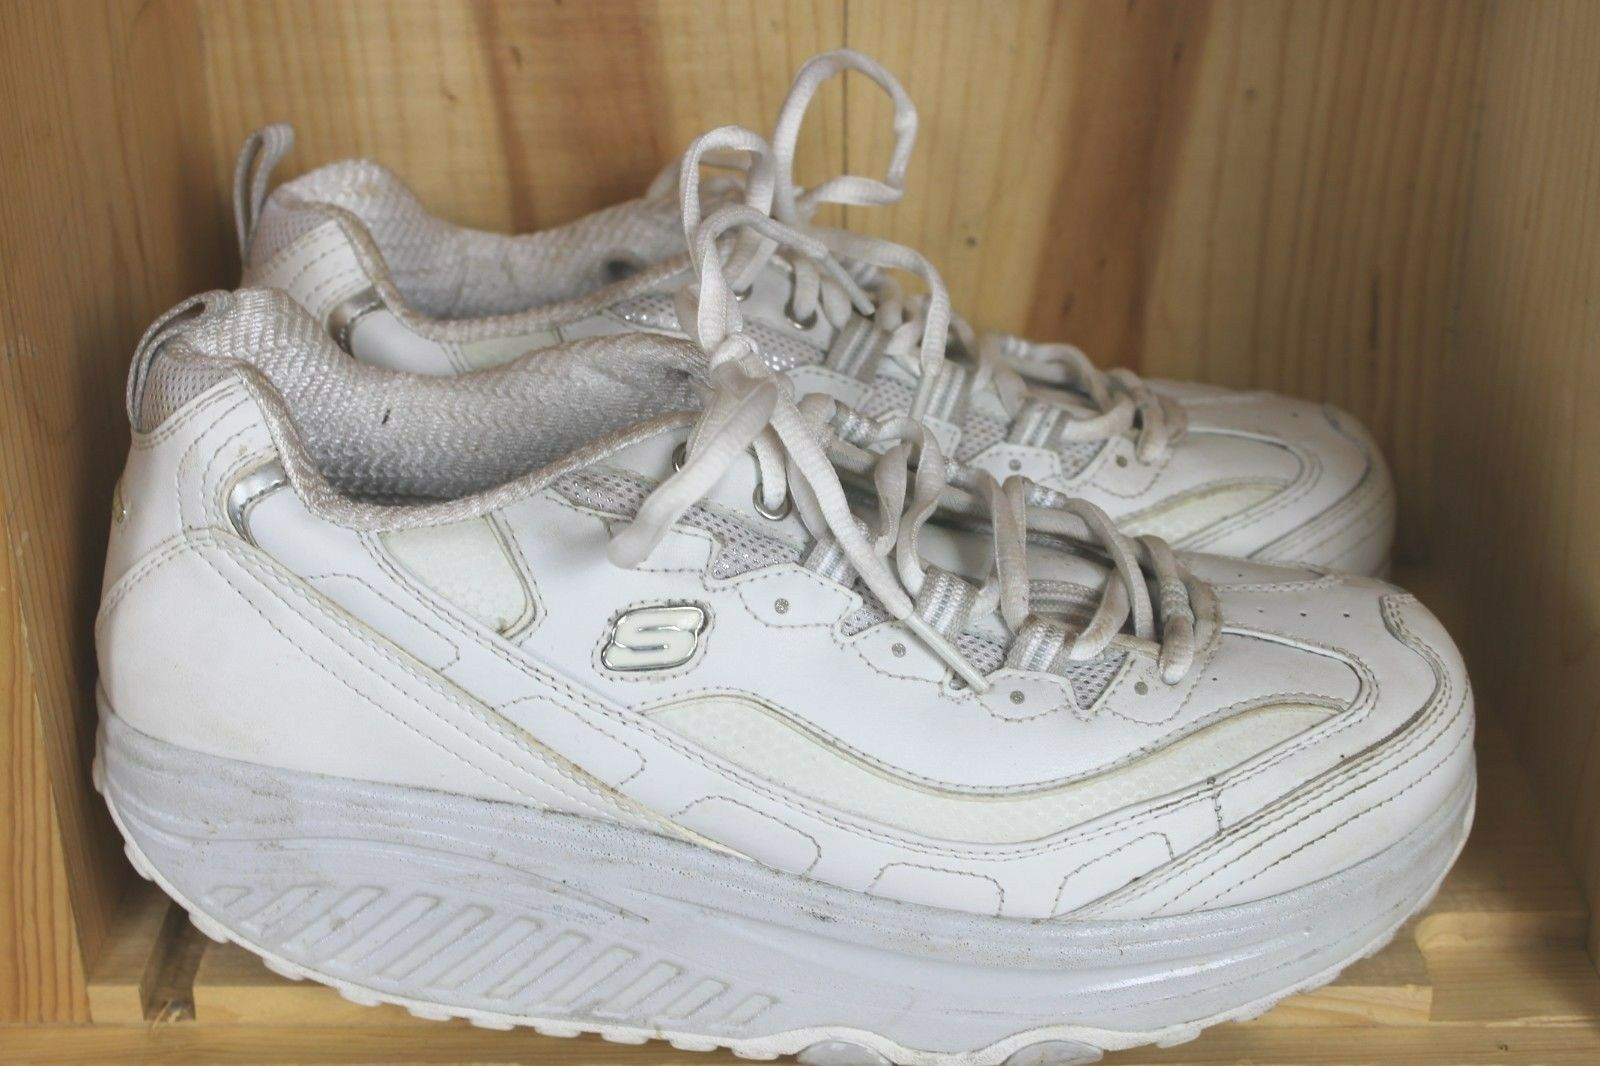 Skechers Shape Ups Leder Fitness Athletic Schuhes Weiß Leder Ups sz 9.5 Damenschuhe 11800 96d1d9